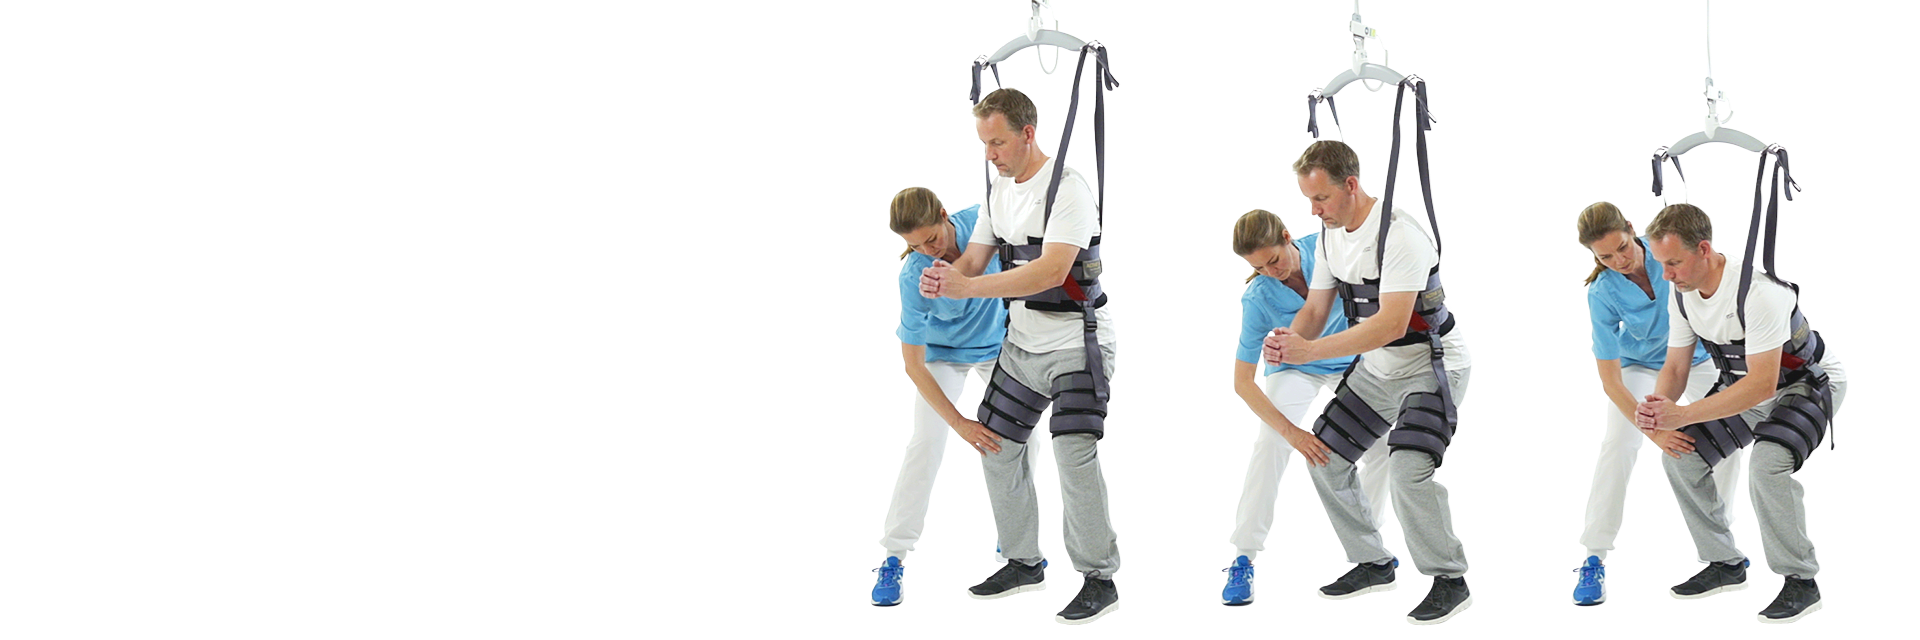 Ceiling hoist with dynamic body weight support - provides safe and assisted rehabilitation exercises with dynamic body weight support.